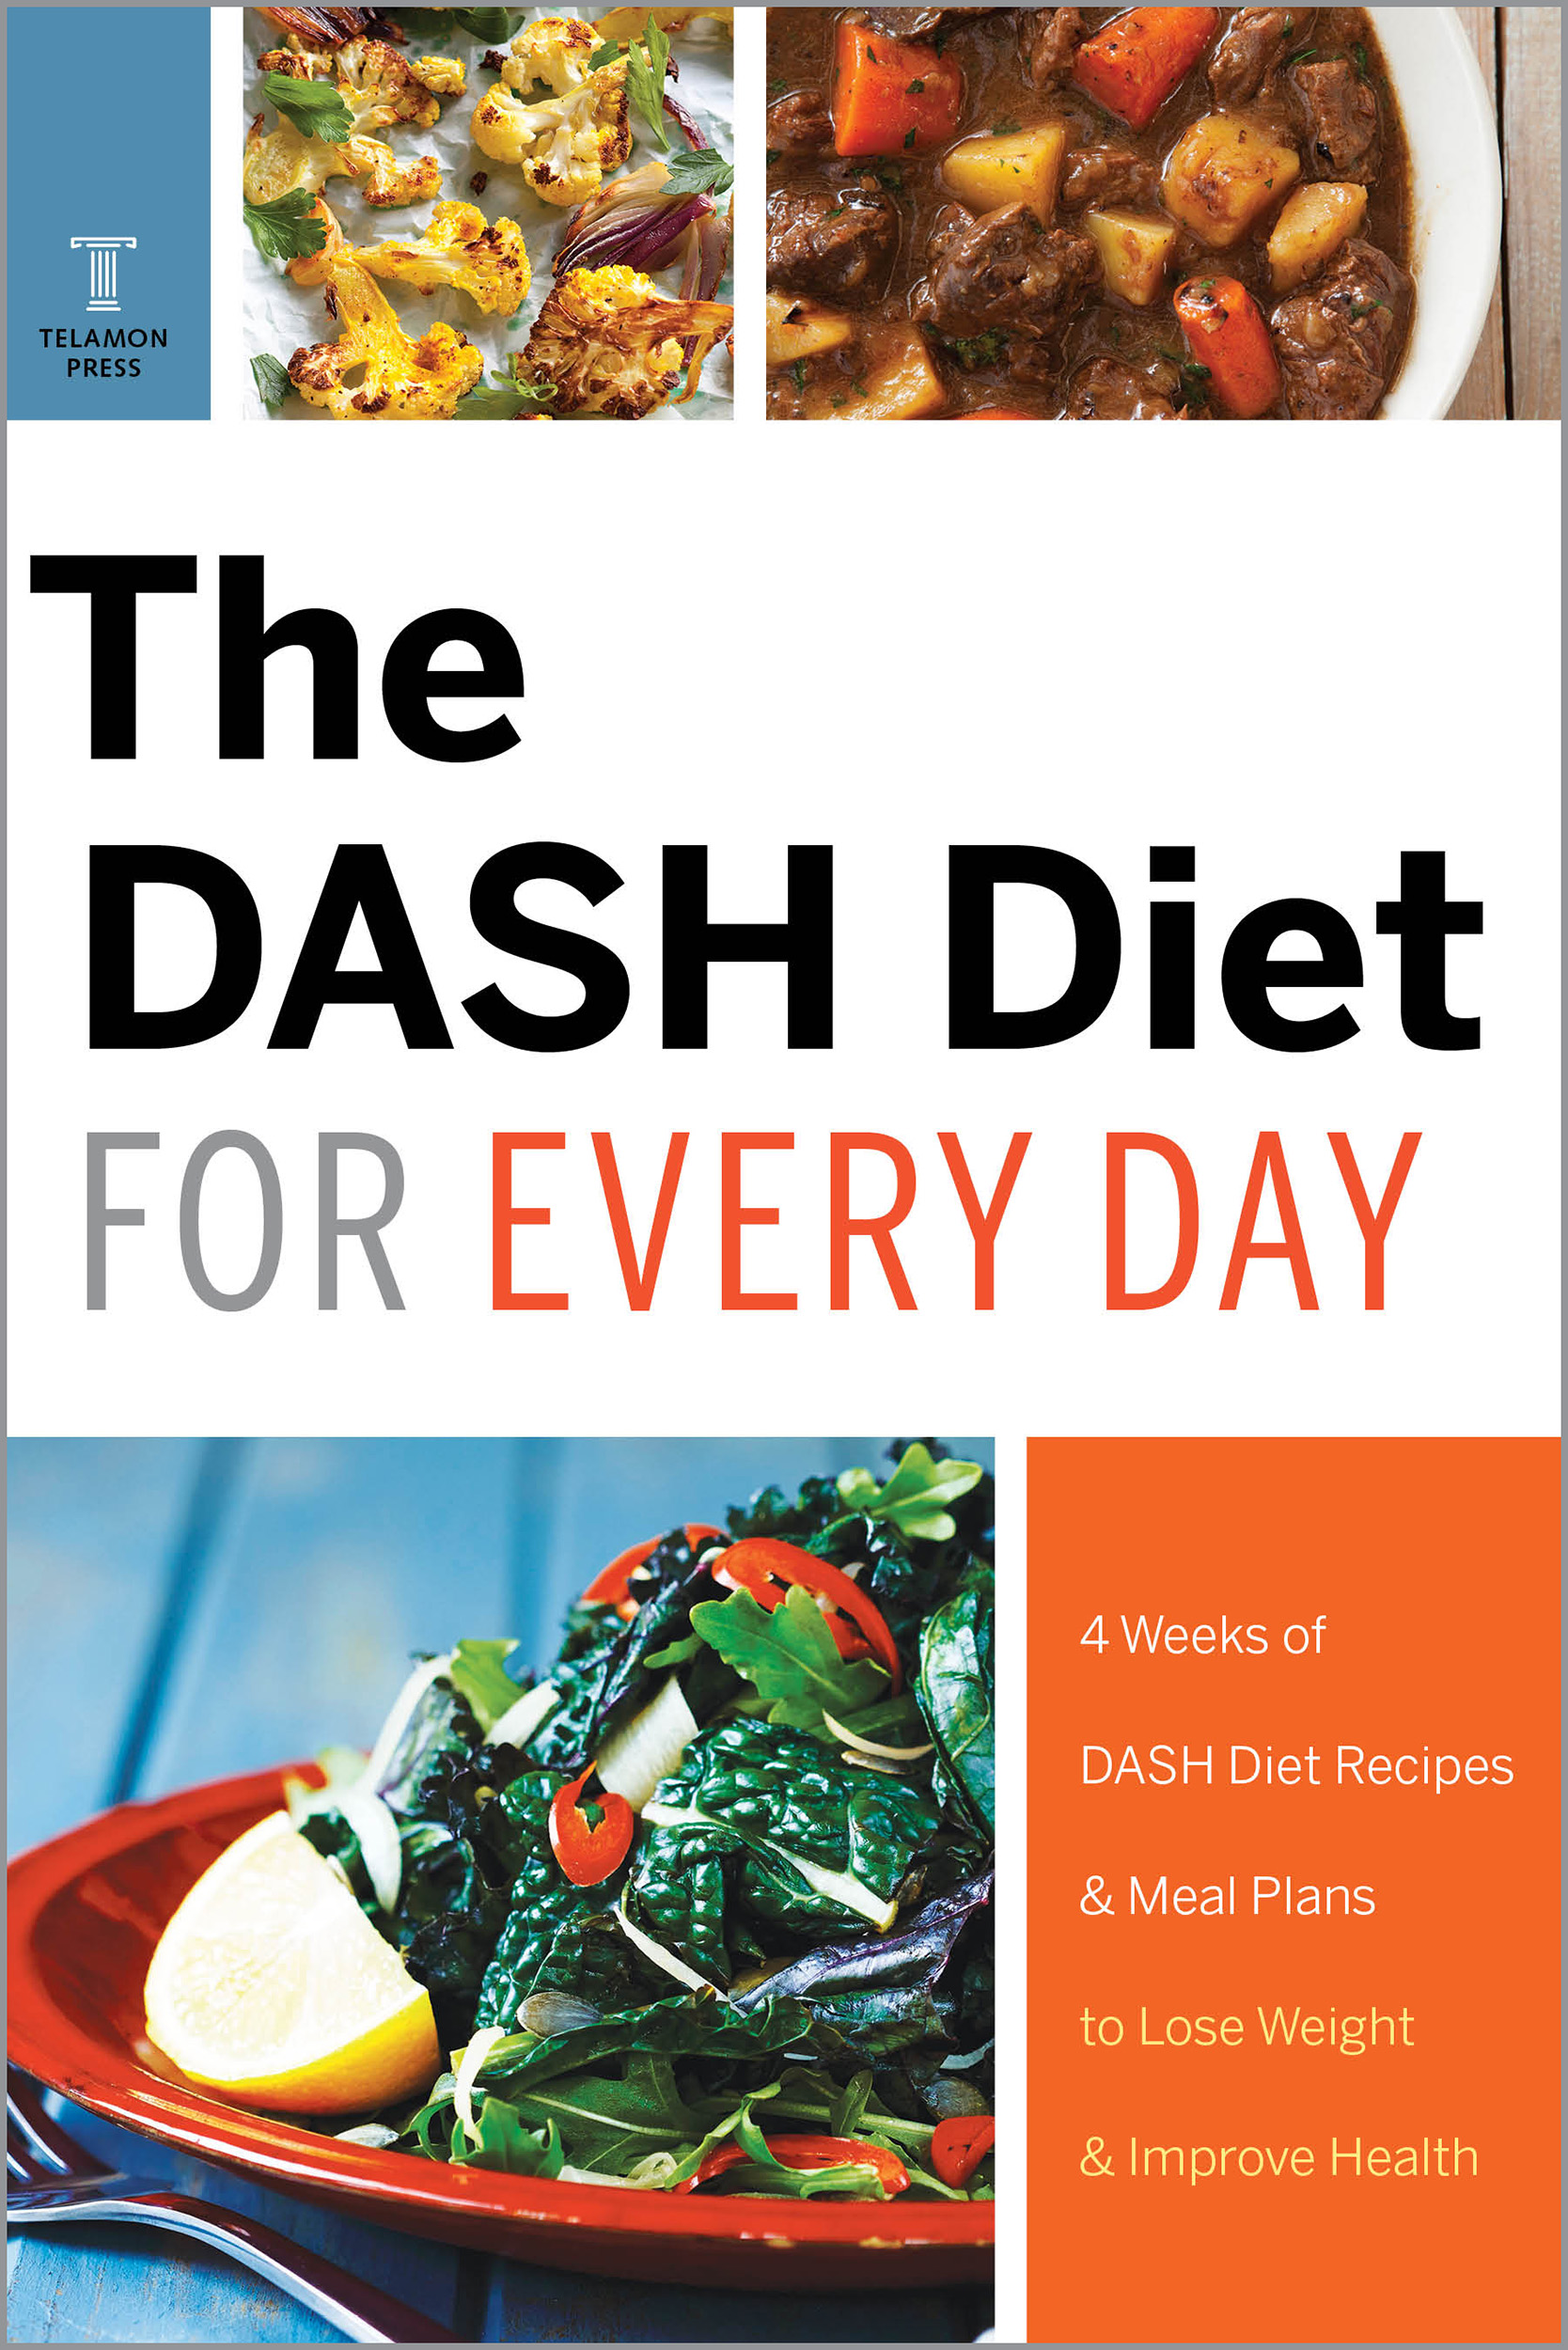 The DASH Diet for Every Day